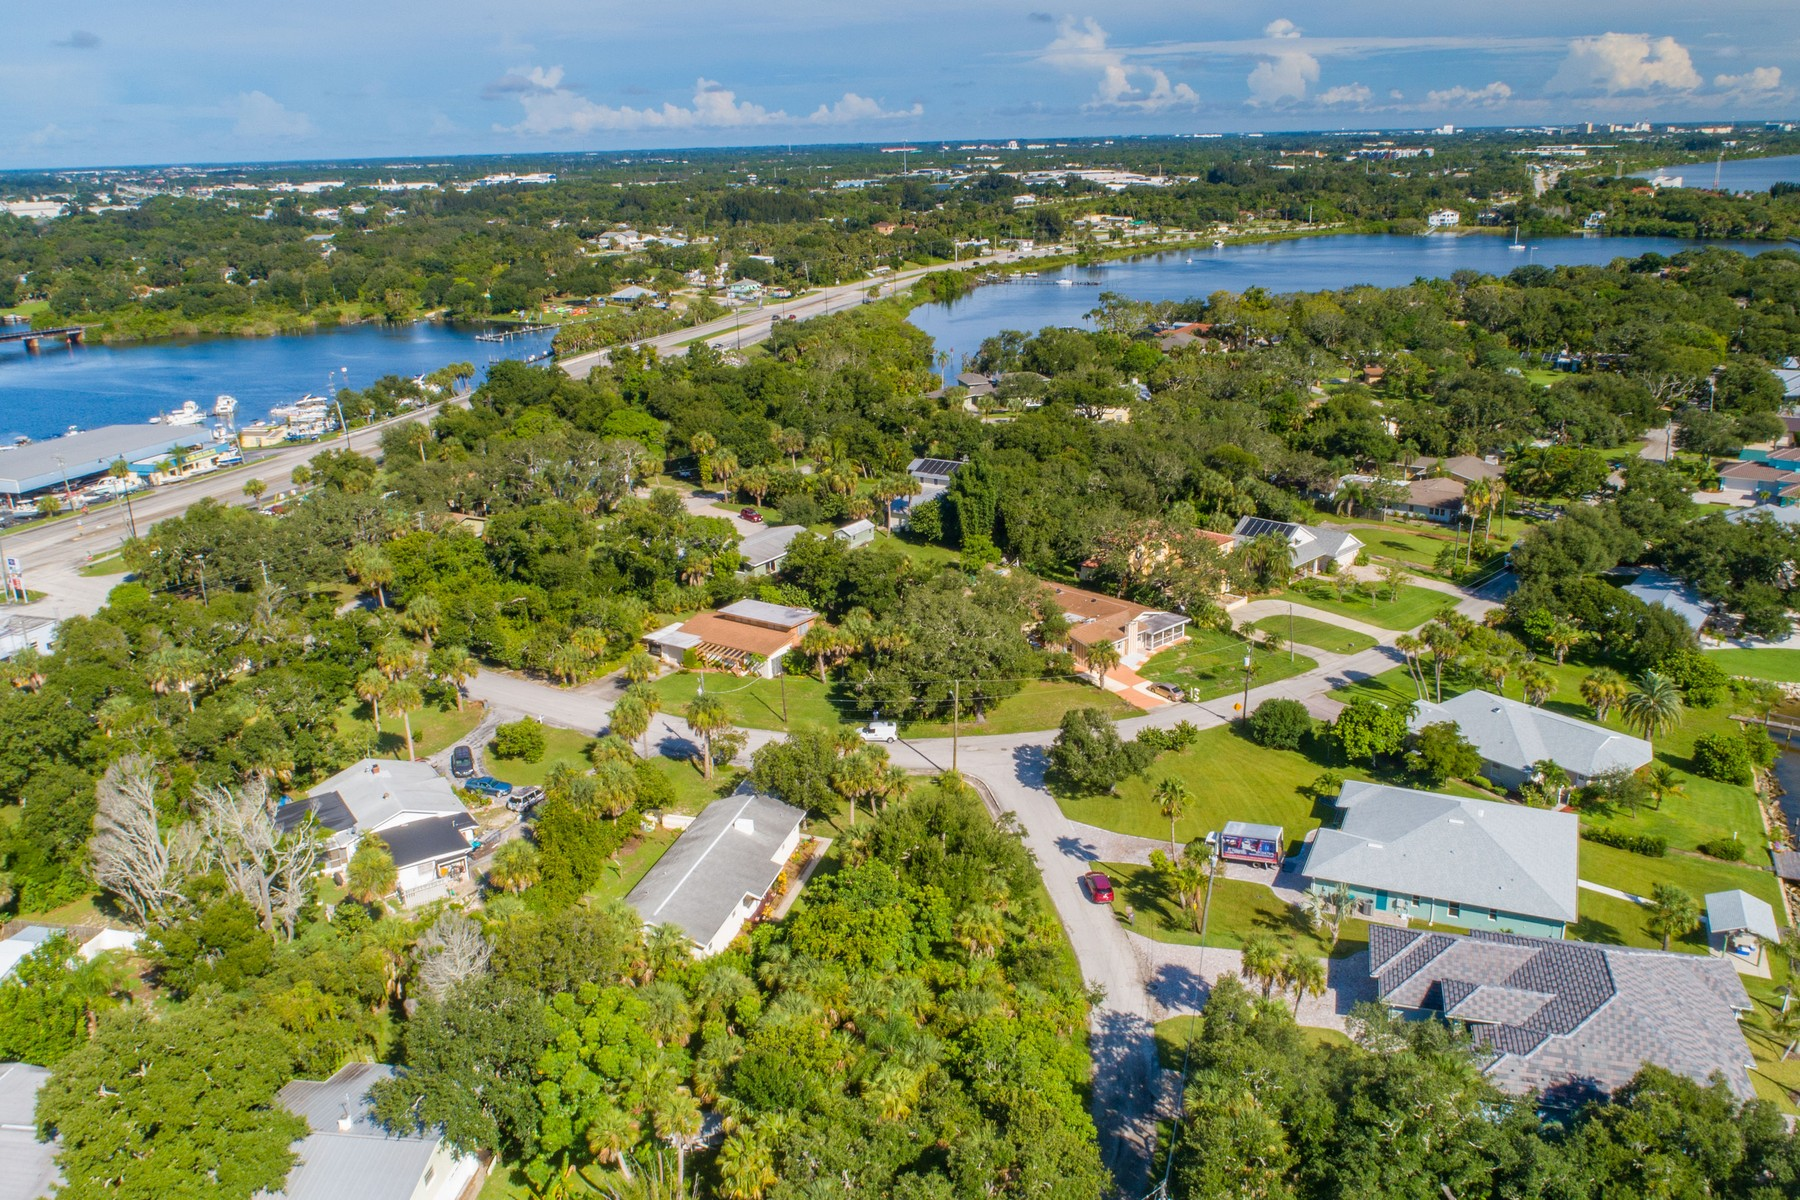 Additional photo for property listing at Charming Home Nestled in Unique Riverfront Community 1419 Anglers Drive NE Palm Bay, Florida 32905 United States